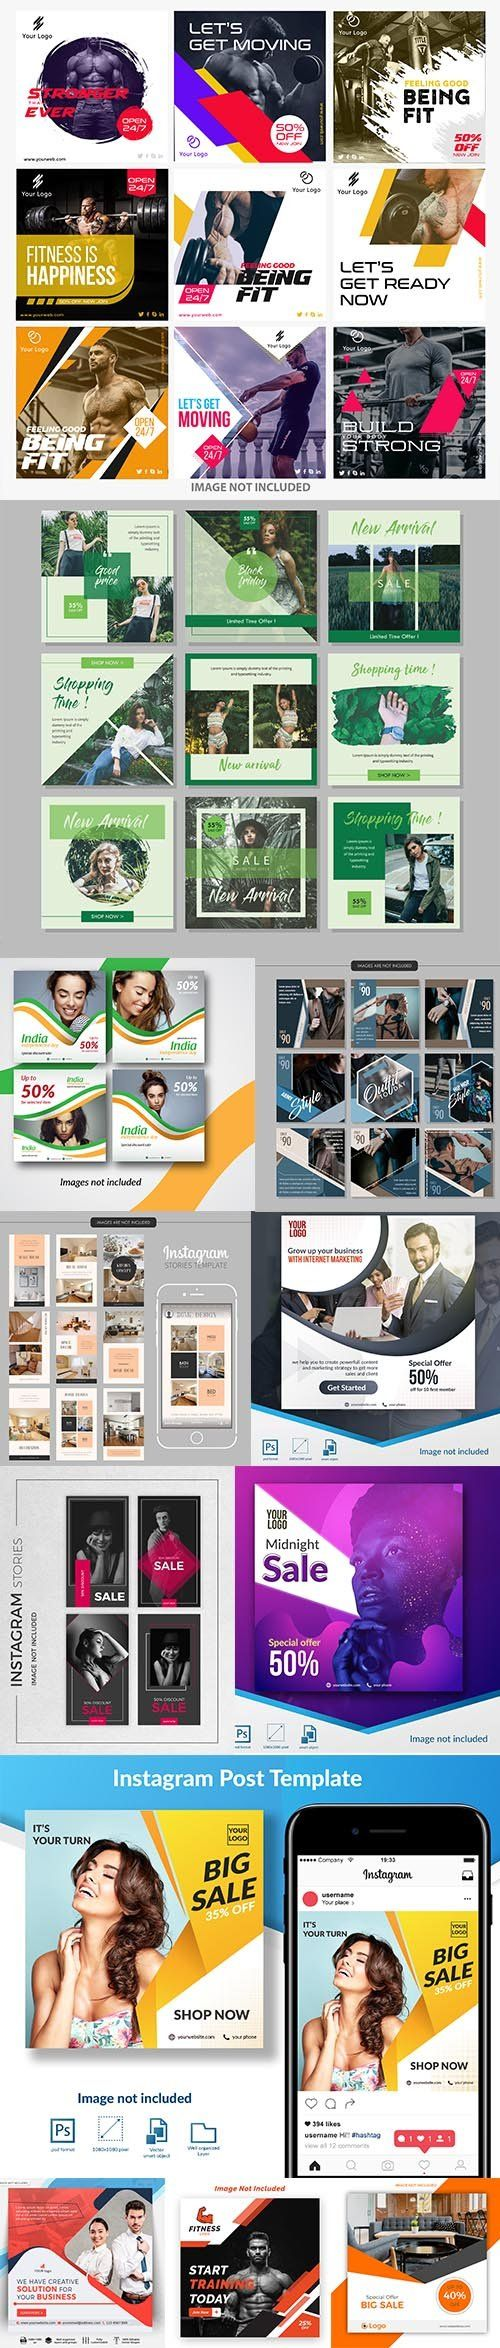 Social Media Post PSD and EPS Template Set 9